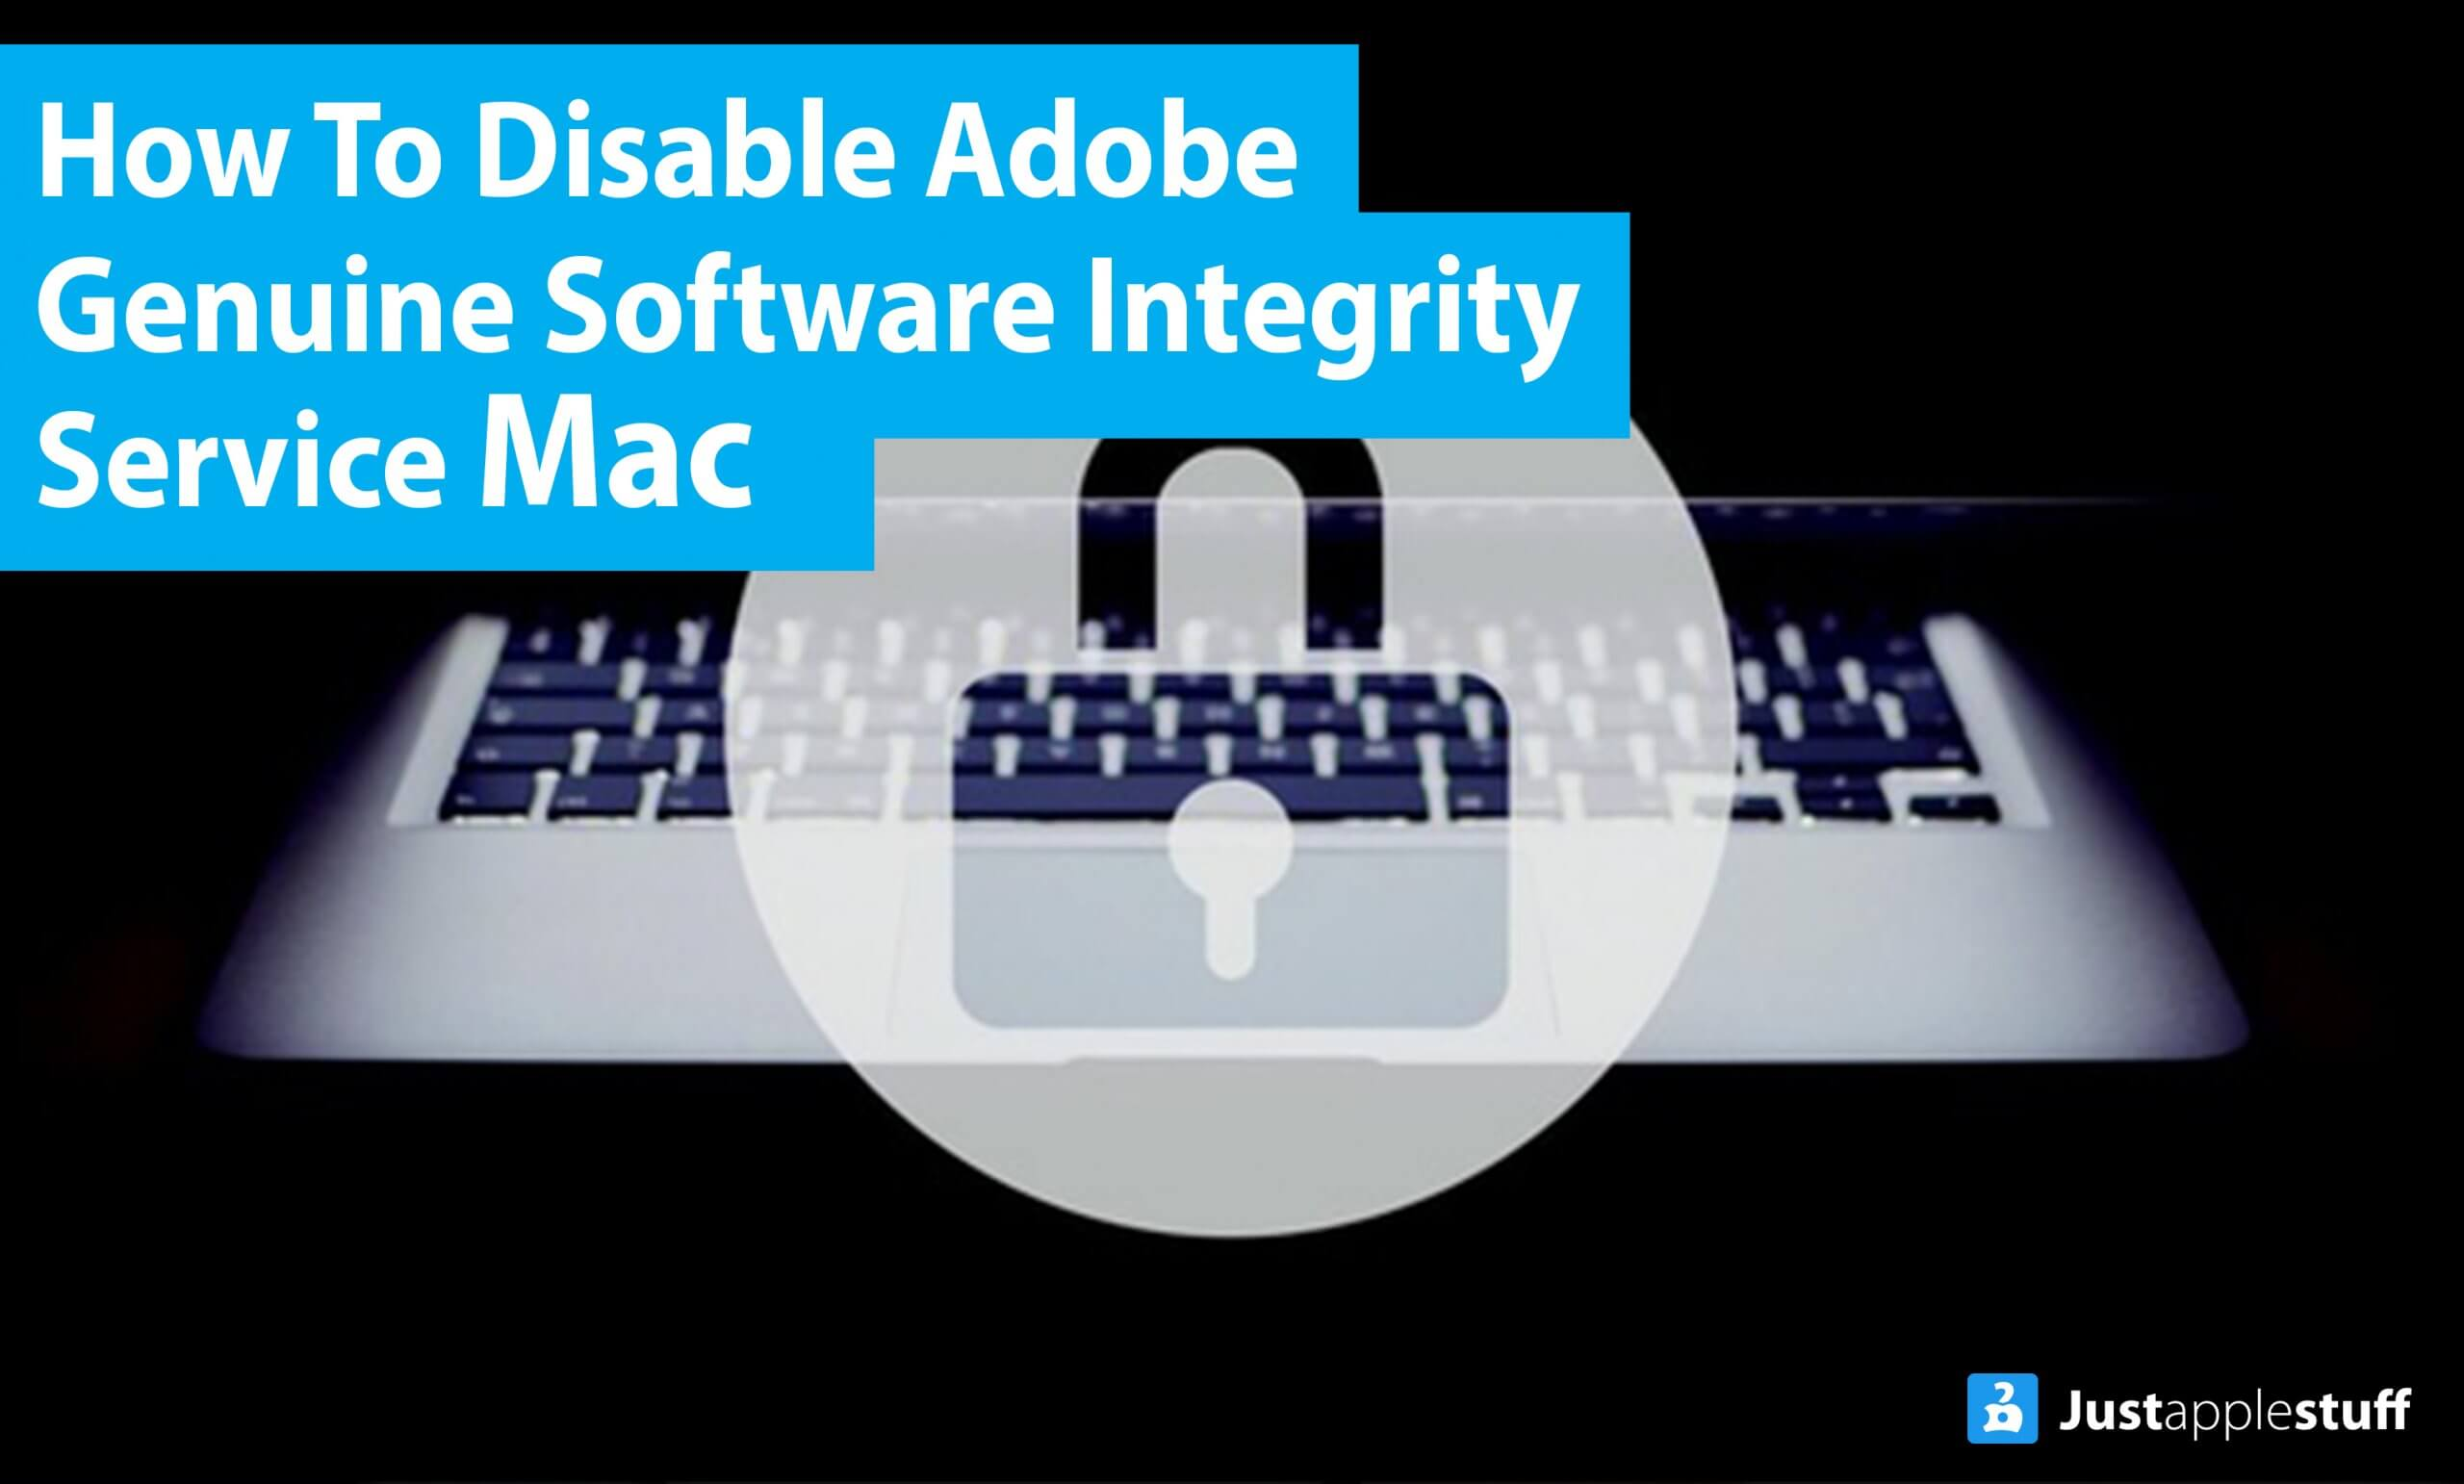 disable Adobe Genuine Software Integrity Service Mac